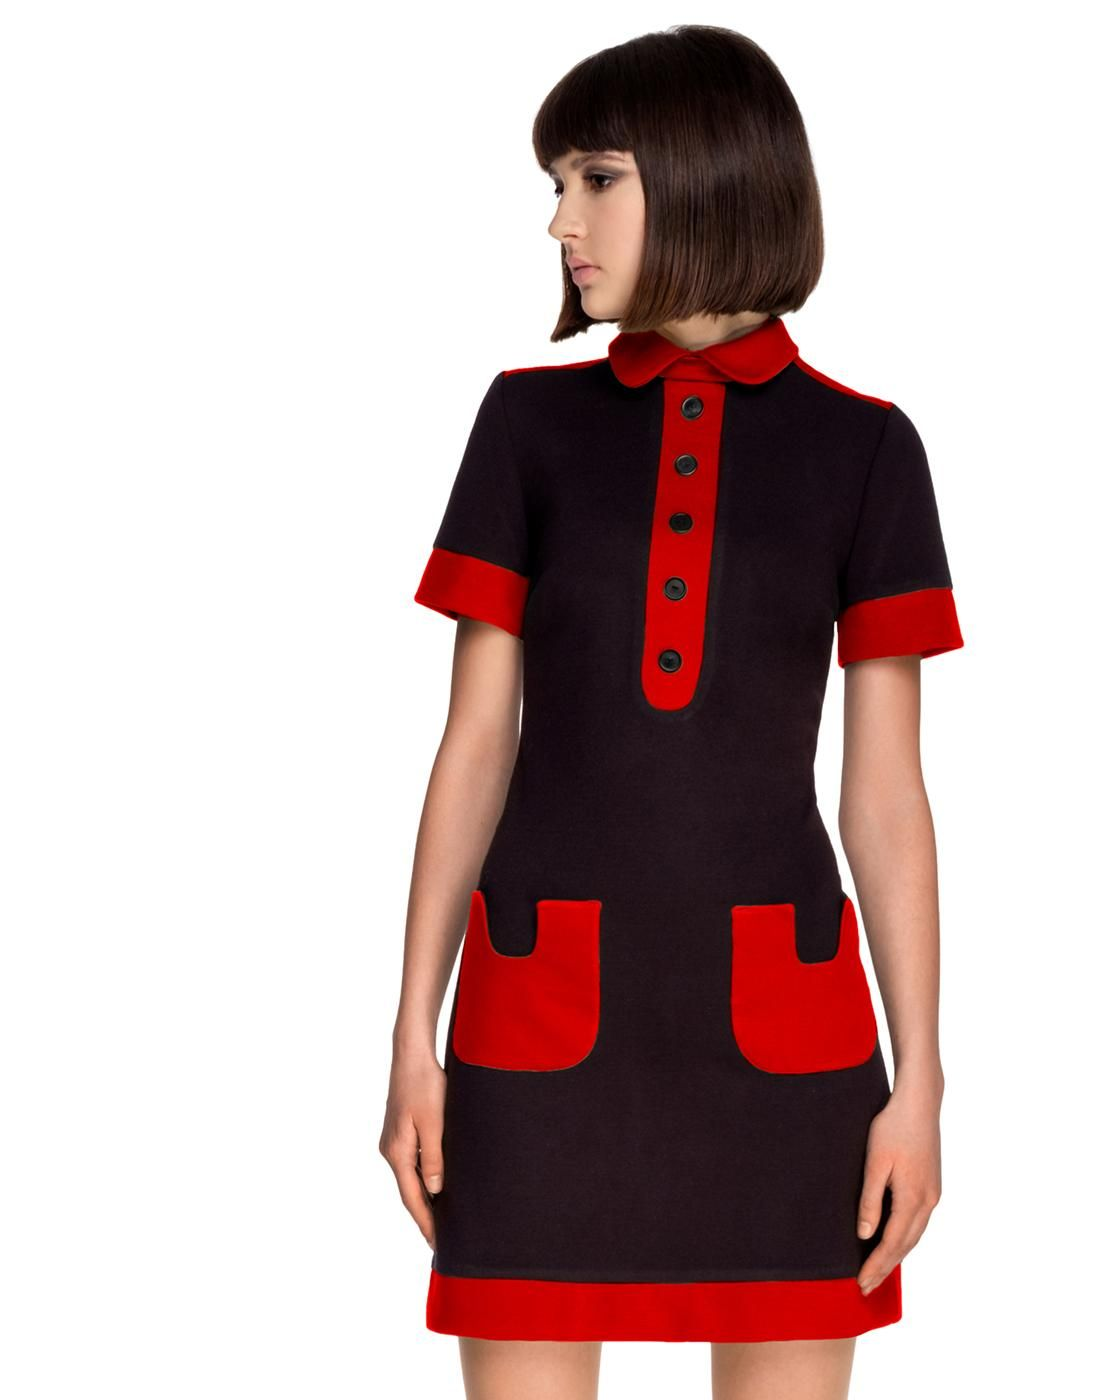 5c916cdd969 ... dress. No jean for me until the  70s. This was my look in 60 s. Laura  Petrie meets Mod  )